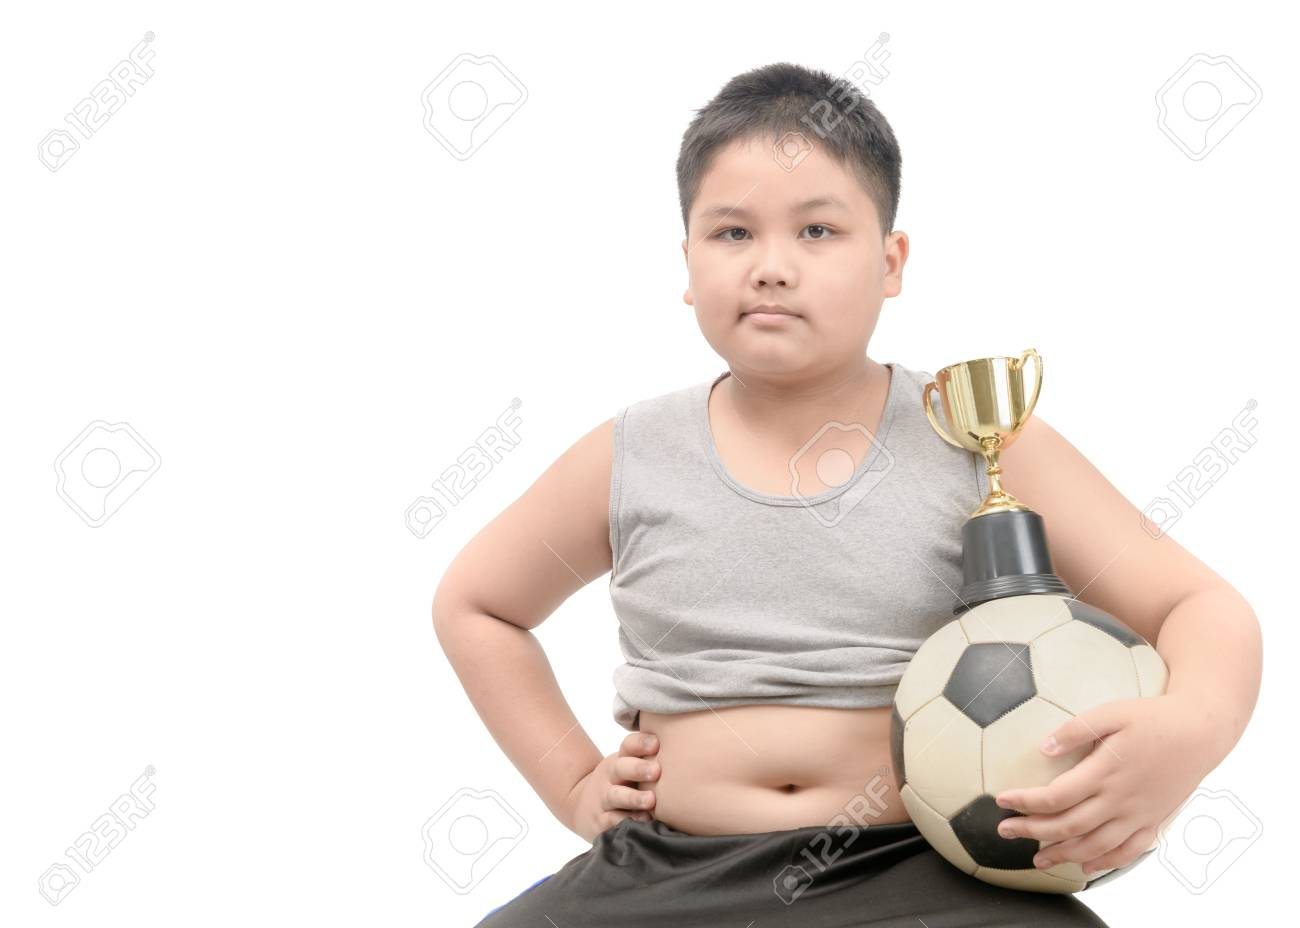 can i lose weight by playing soccer